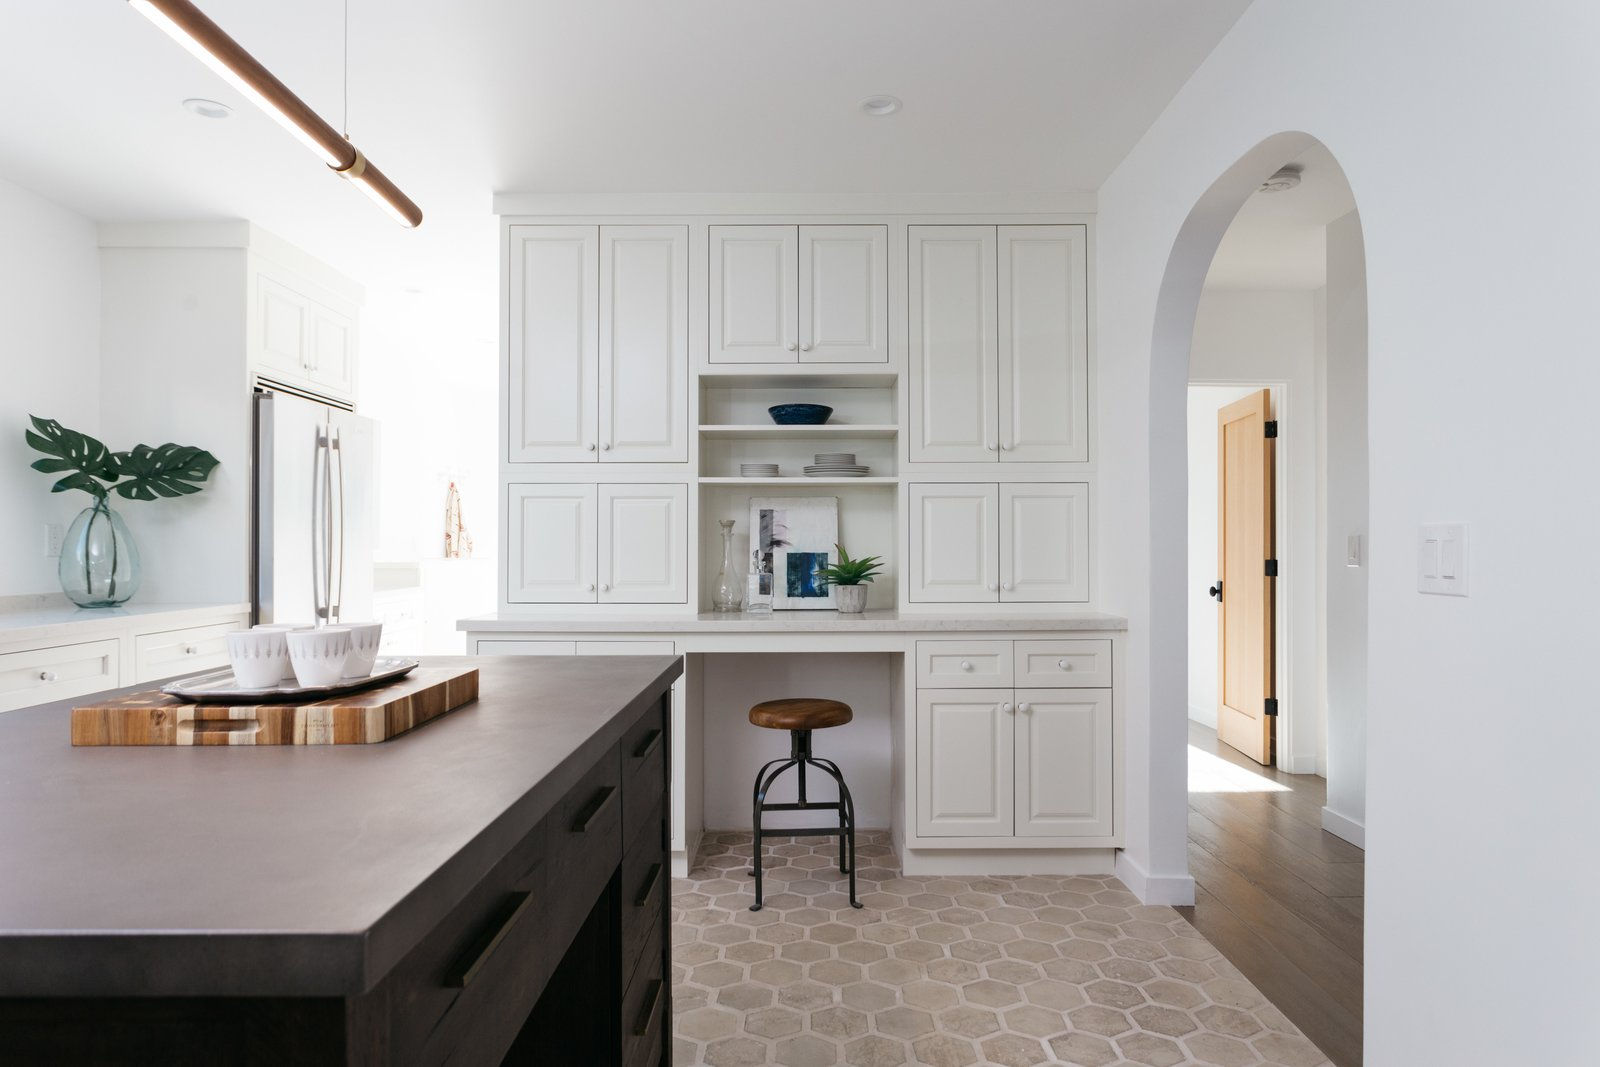 Kitchen, Concrete, Ceramic Tile, Refrigerator, Recessed, Pendant, and White The custom cabinetry includes ample storage and a convenient mini desk.  Best Kitchen Ceramic Tile Pendant Photos from An Updated Spanish-Style Abode with an Artist Studio Hits the Market at $1.1M in L.A.